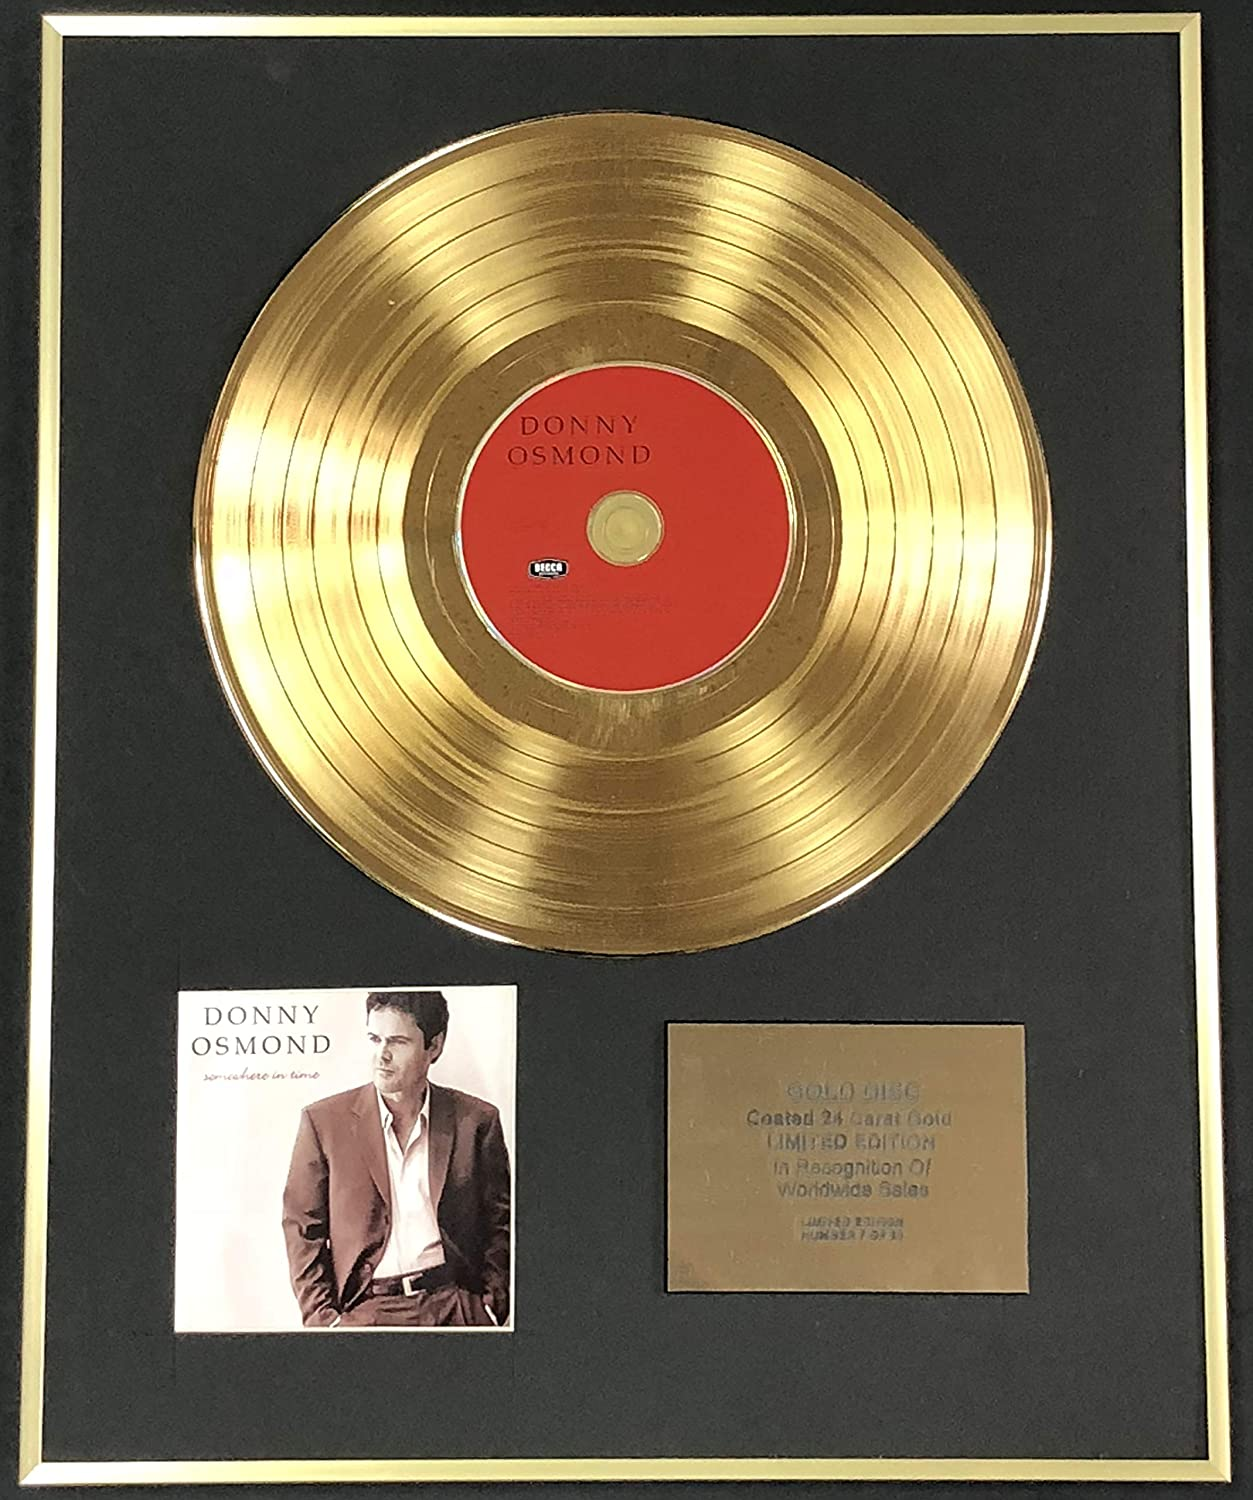 Century Music Awards - Donny Osmond - Exclusive Limited Edition 24 Carat Gold Disc - Somewhere In Time